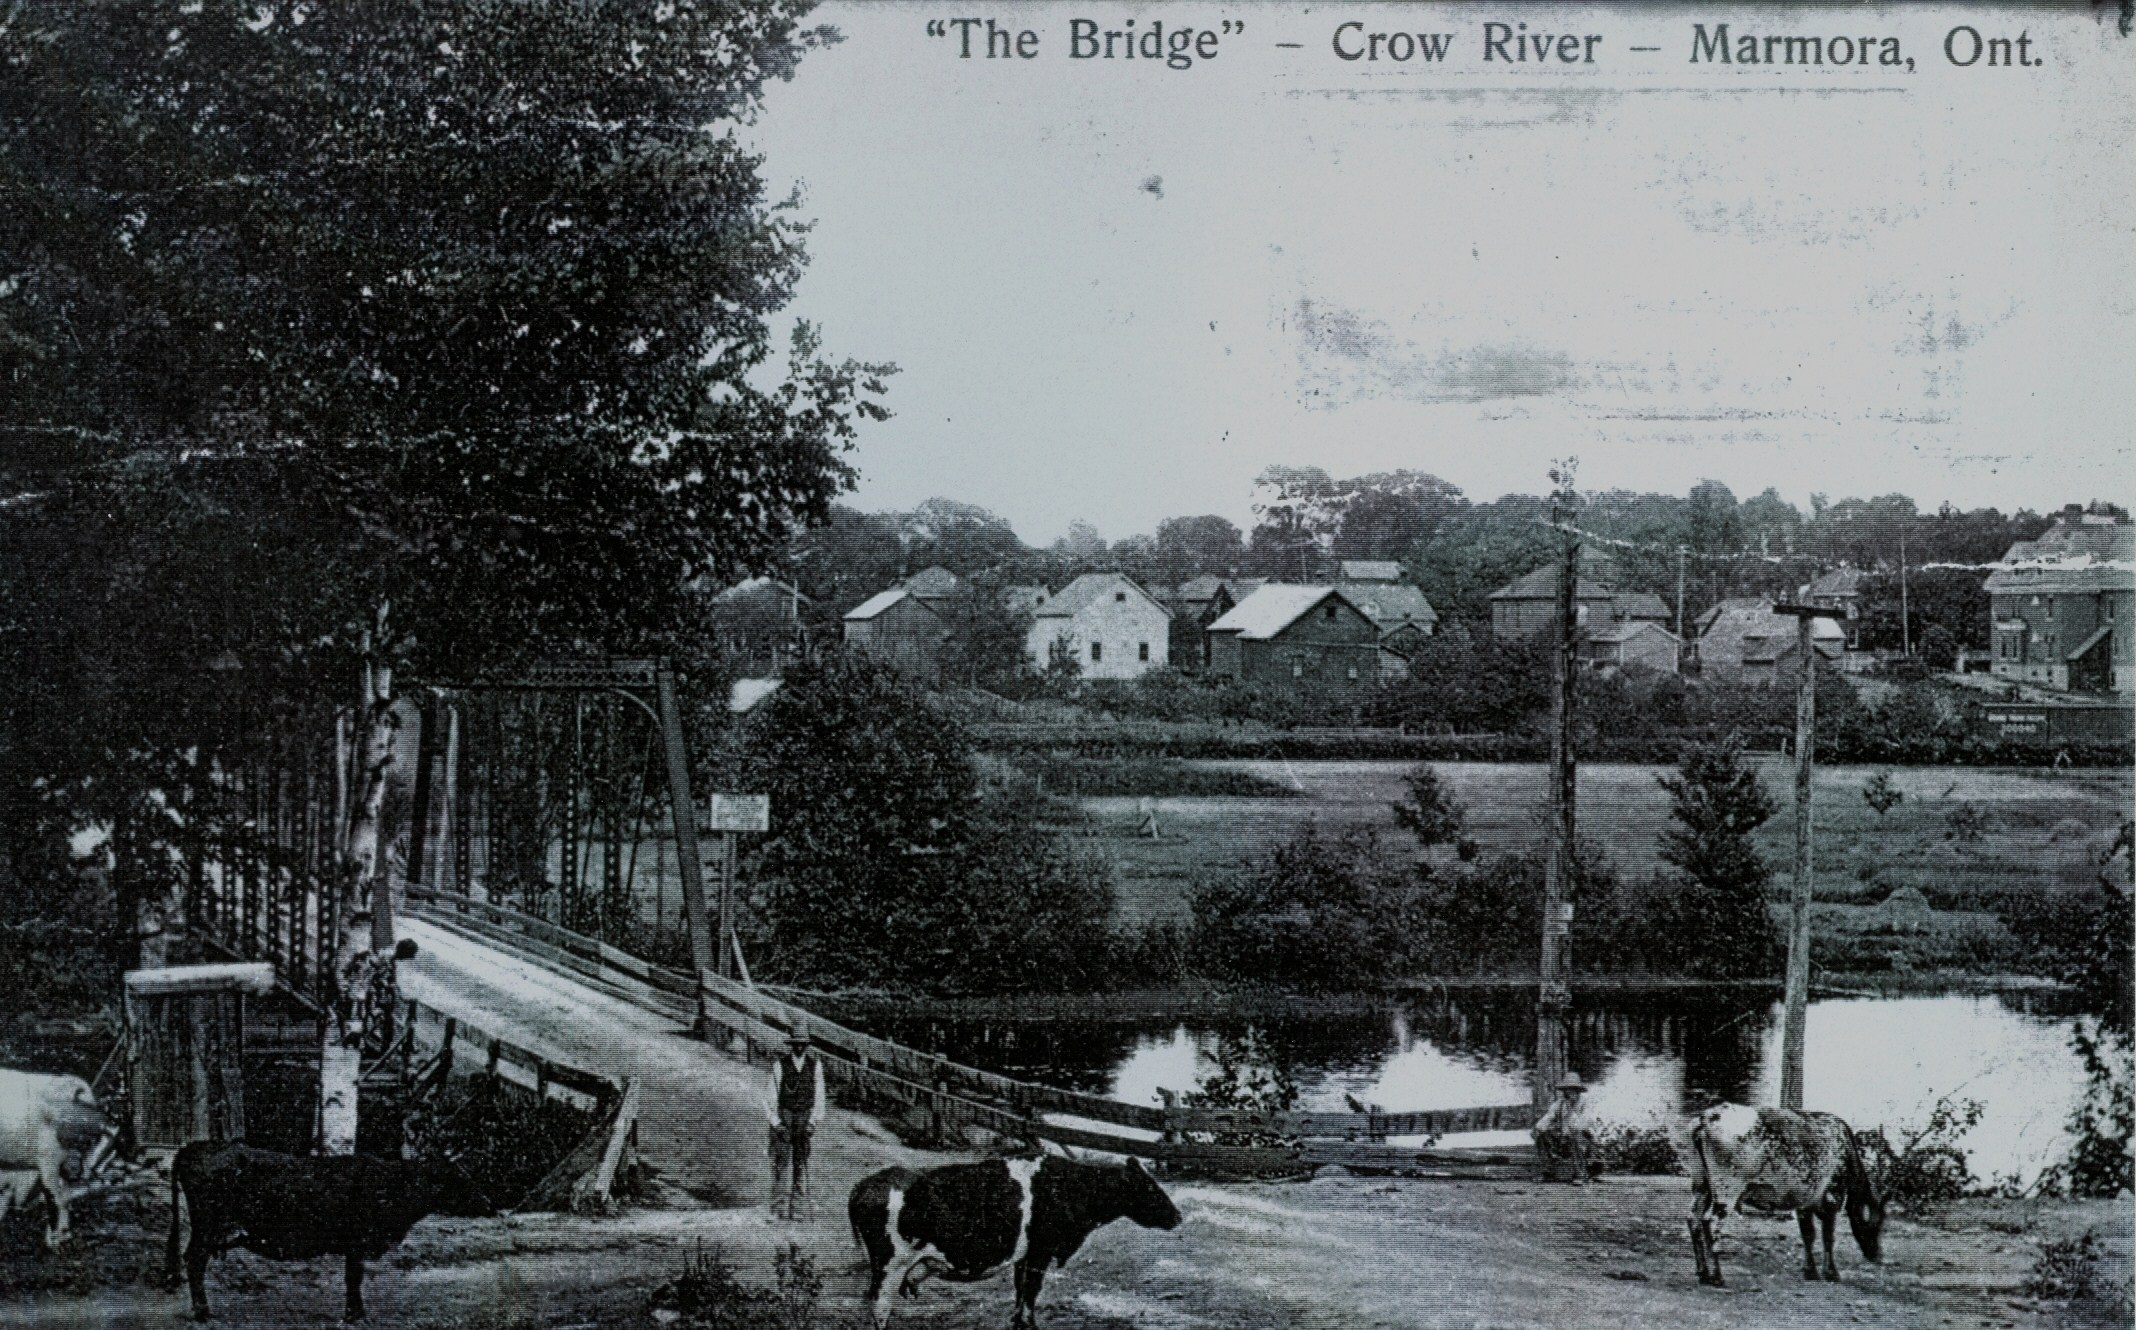 Photo of Ike Wright guarding the cows at the bridge over the Crowe Riverin 1908